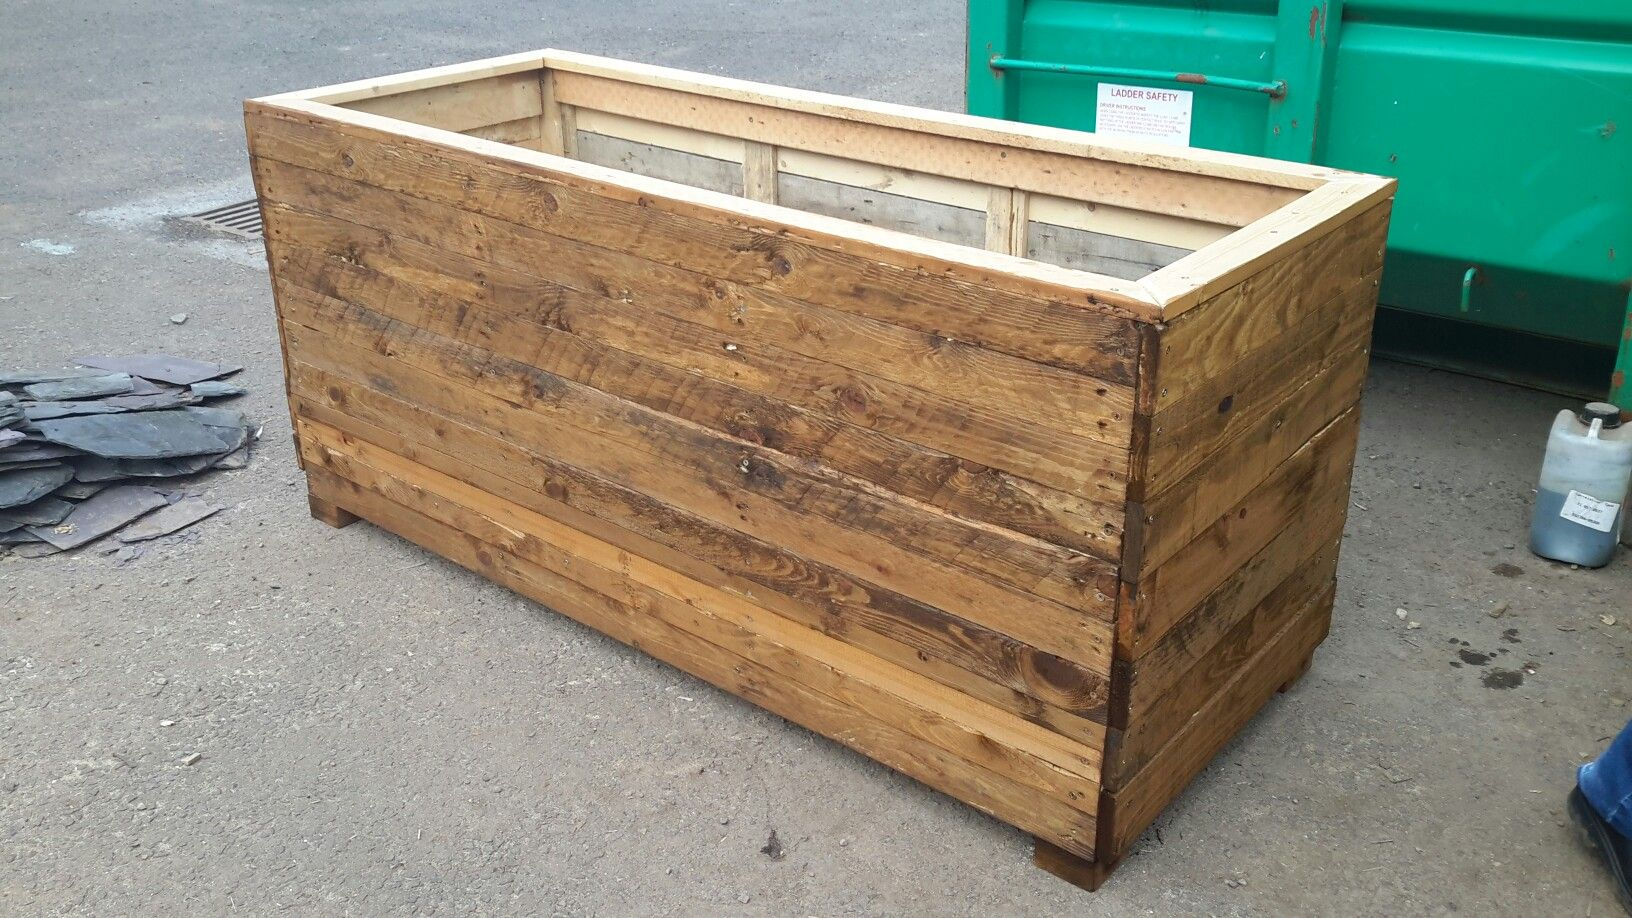 2m x 1m x 1m pallet wood planter boxes wood repurposing projects dundee scotland. Black Bedroom Furniture Sets. Home Design Ideas